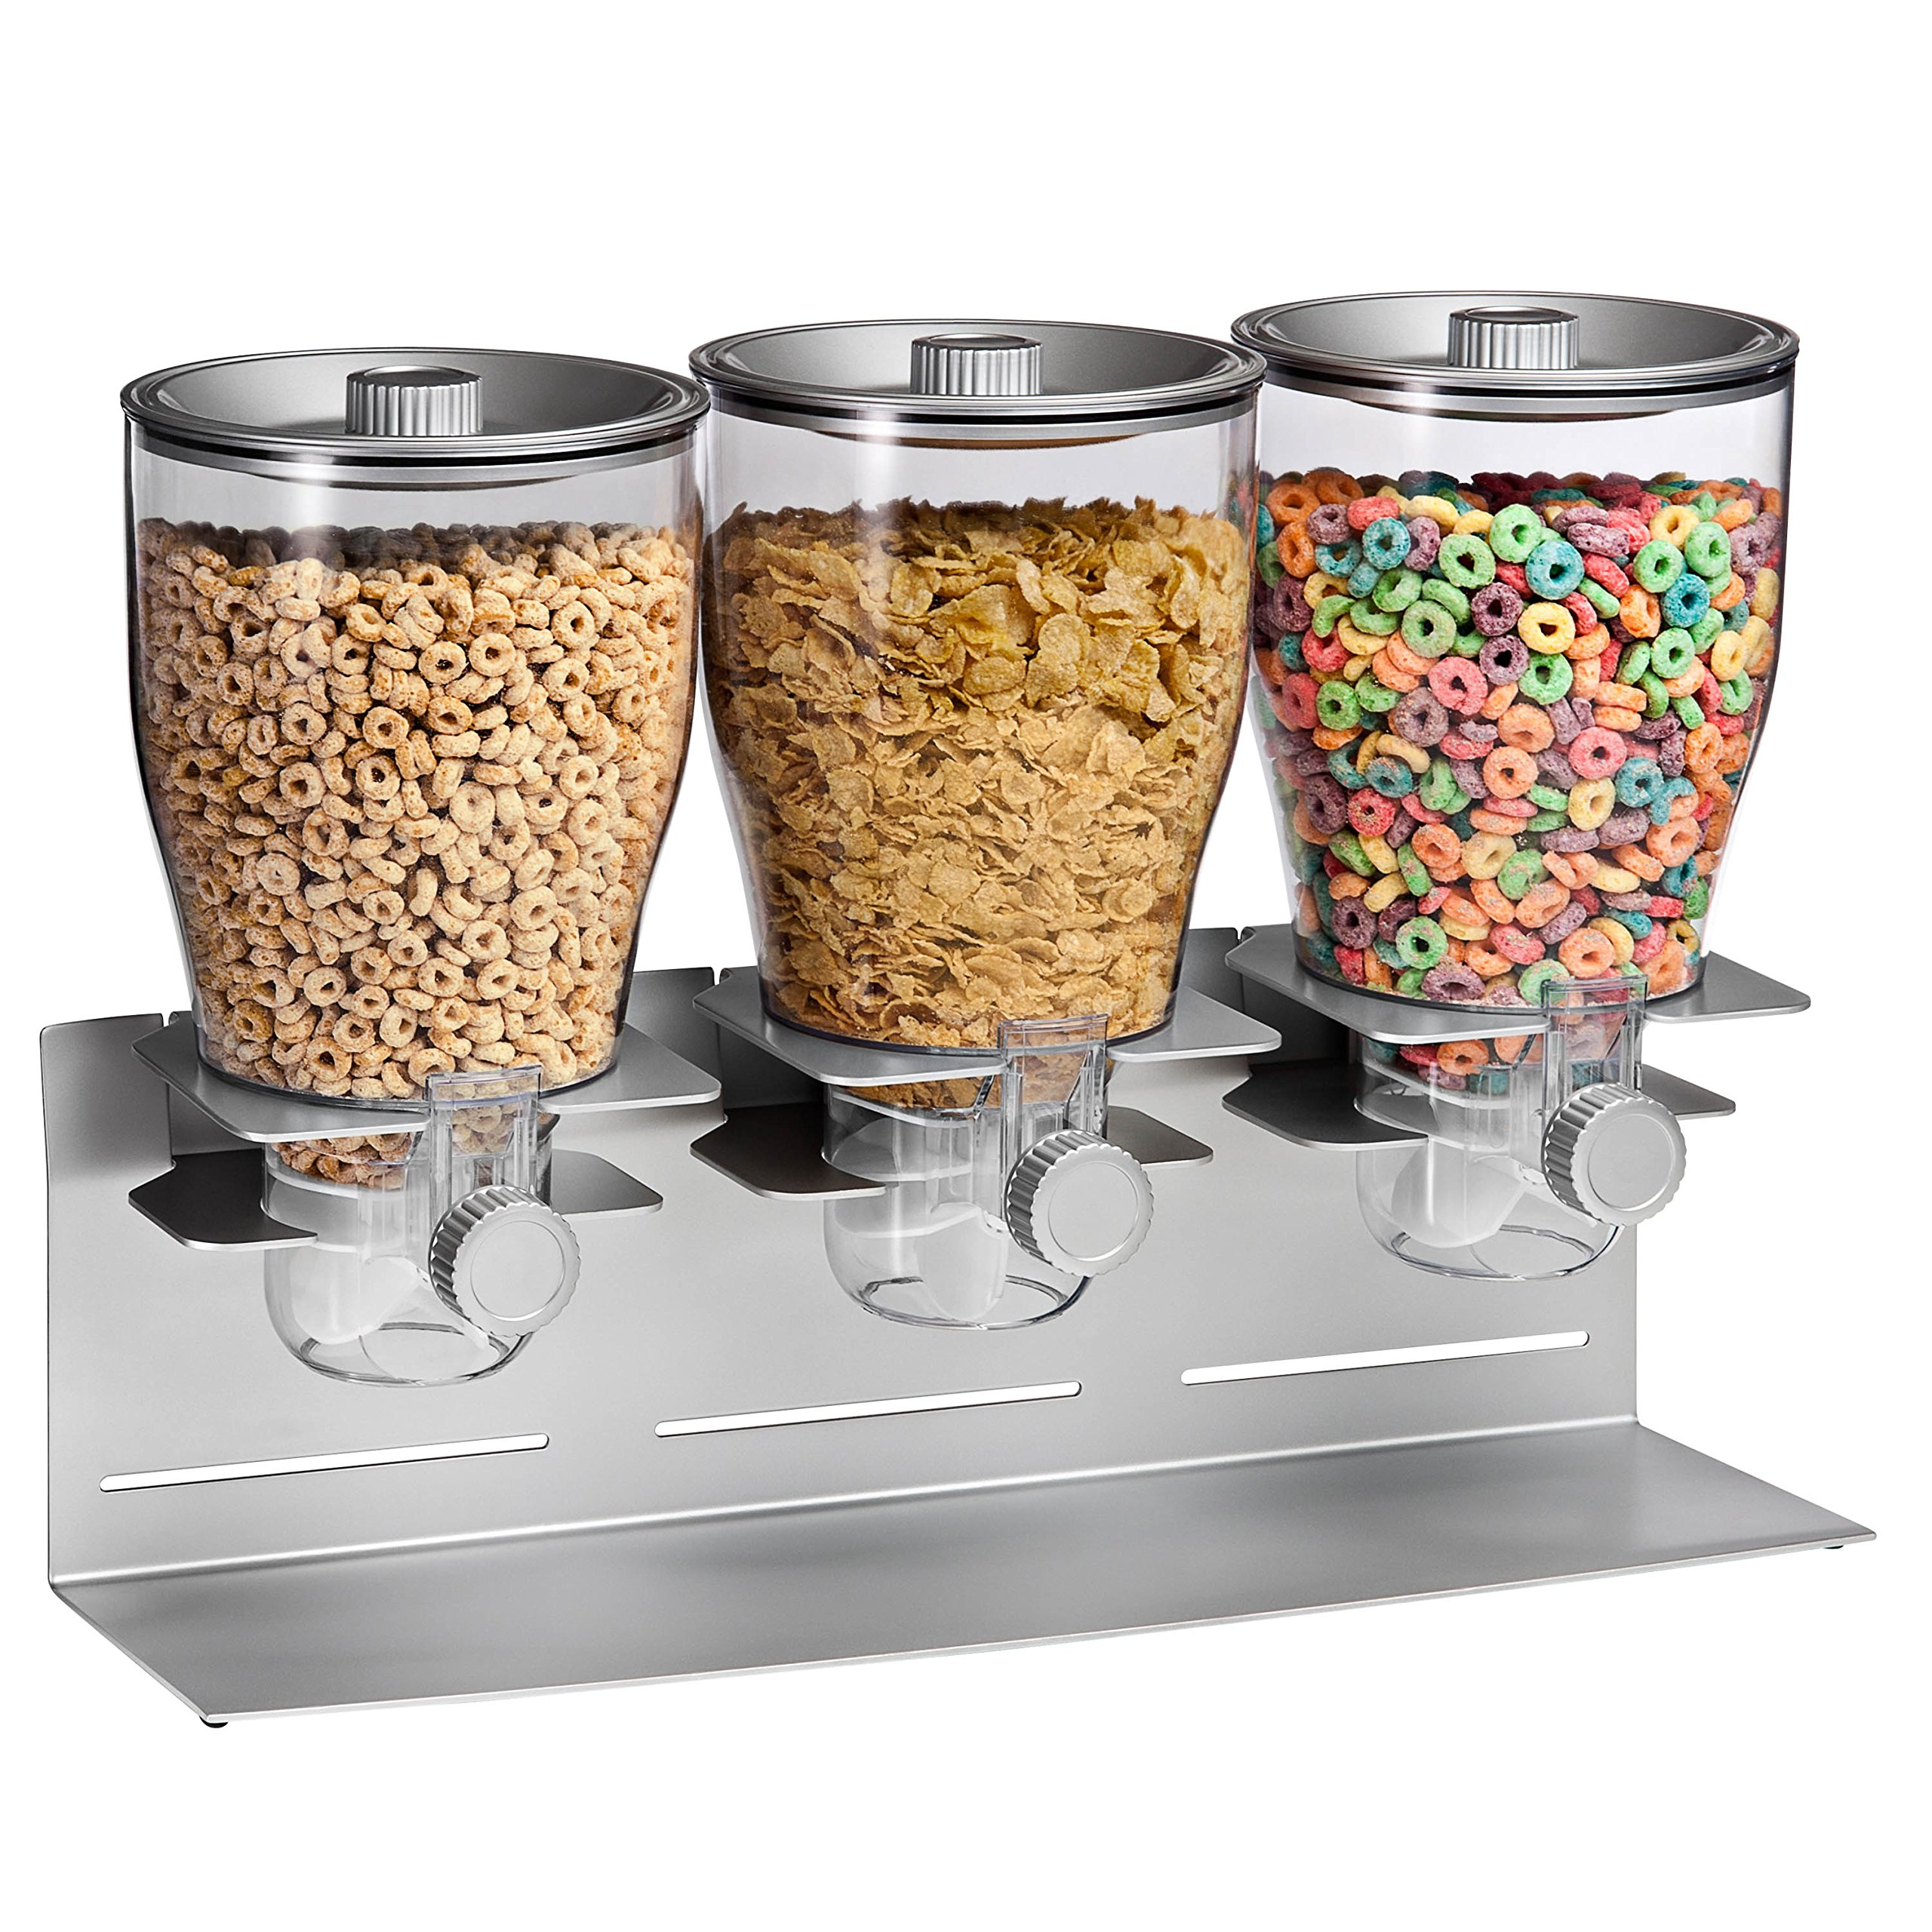 Honey-Can-Do Triple Canister Dry Food Cereal Dispenser, Stainless Steel by ZevrO (Image #1)